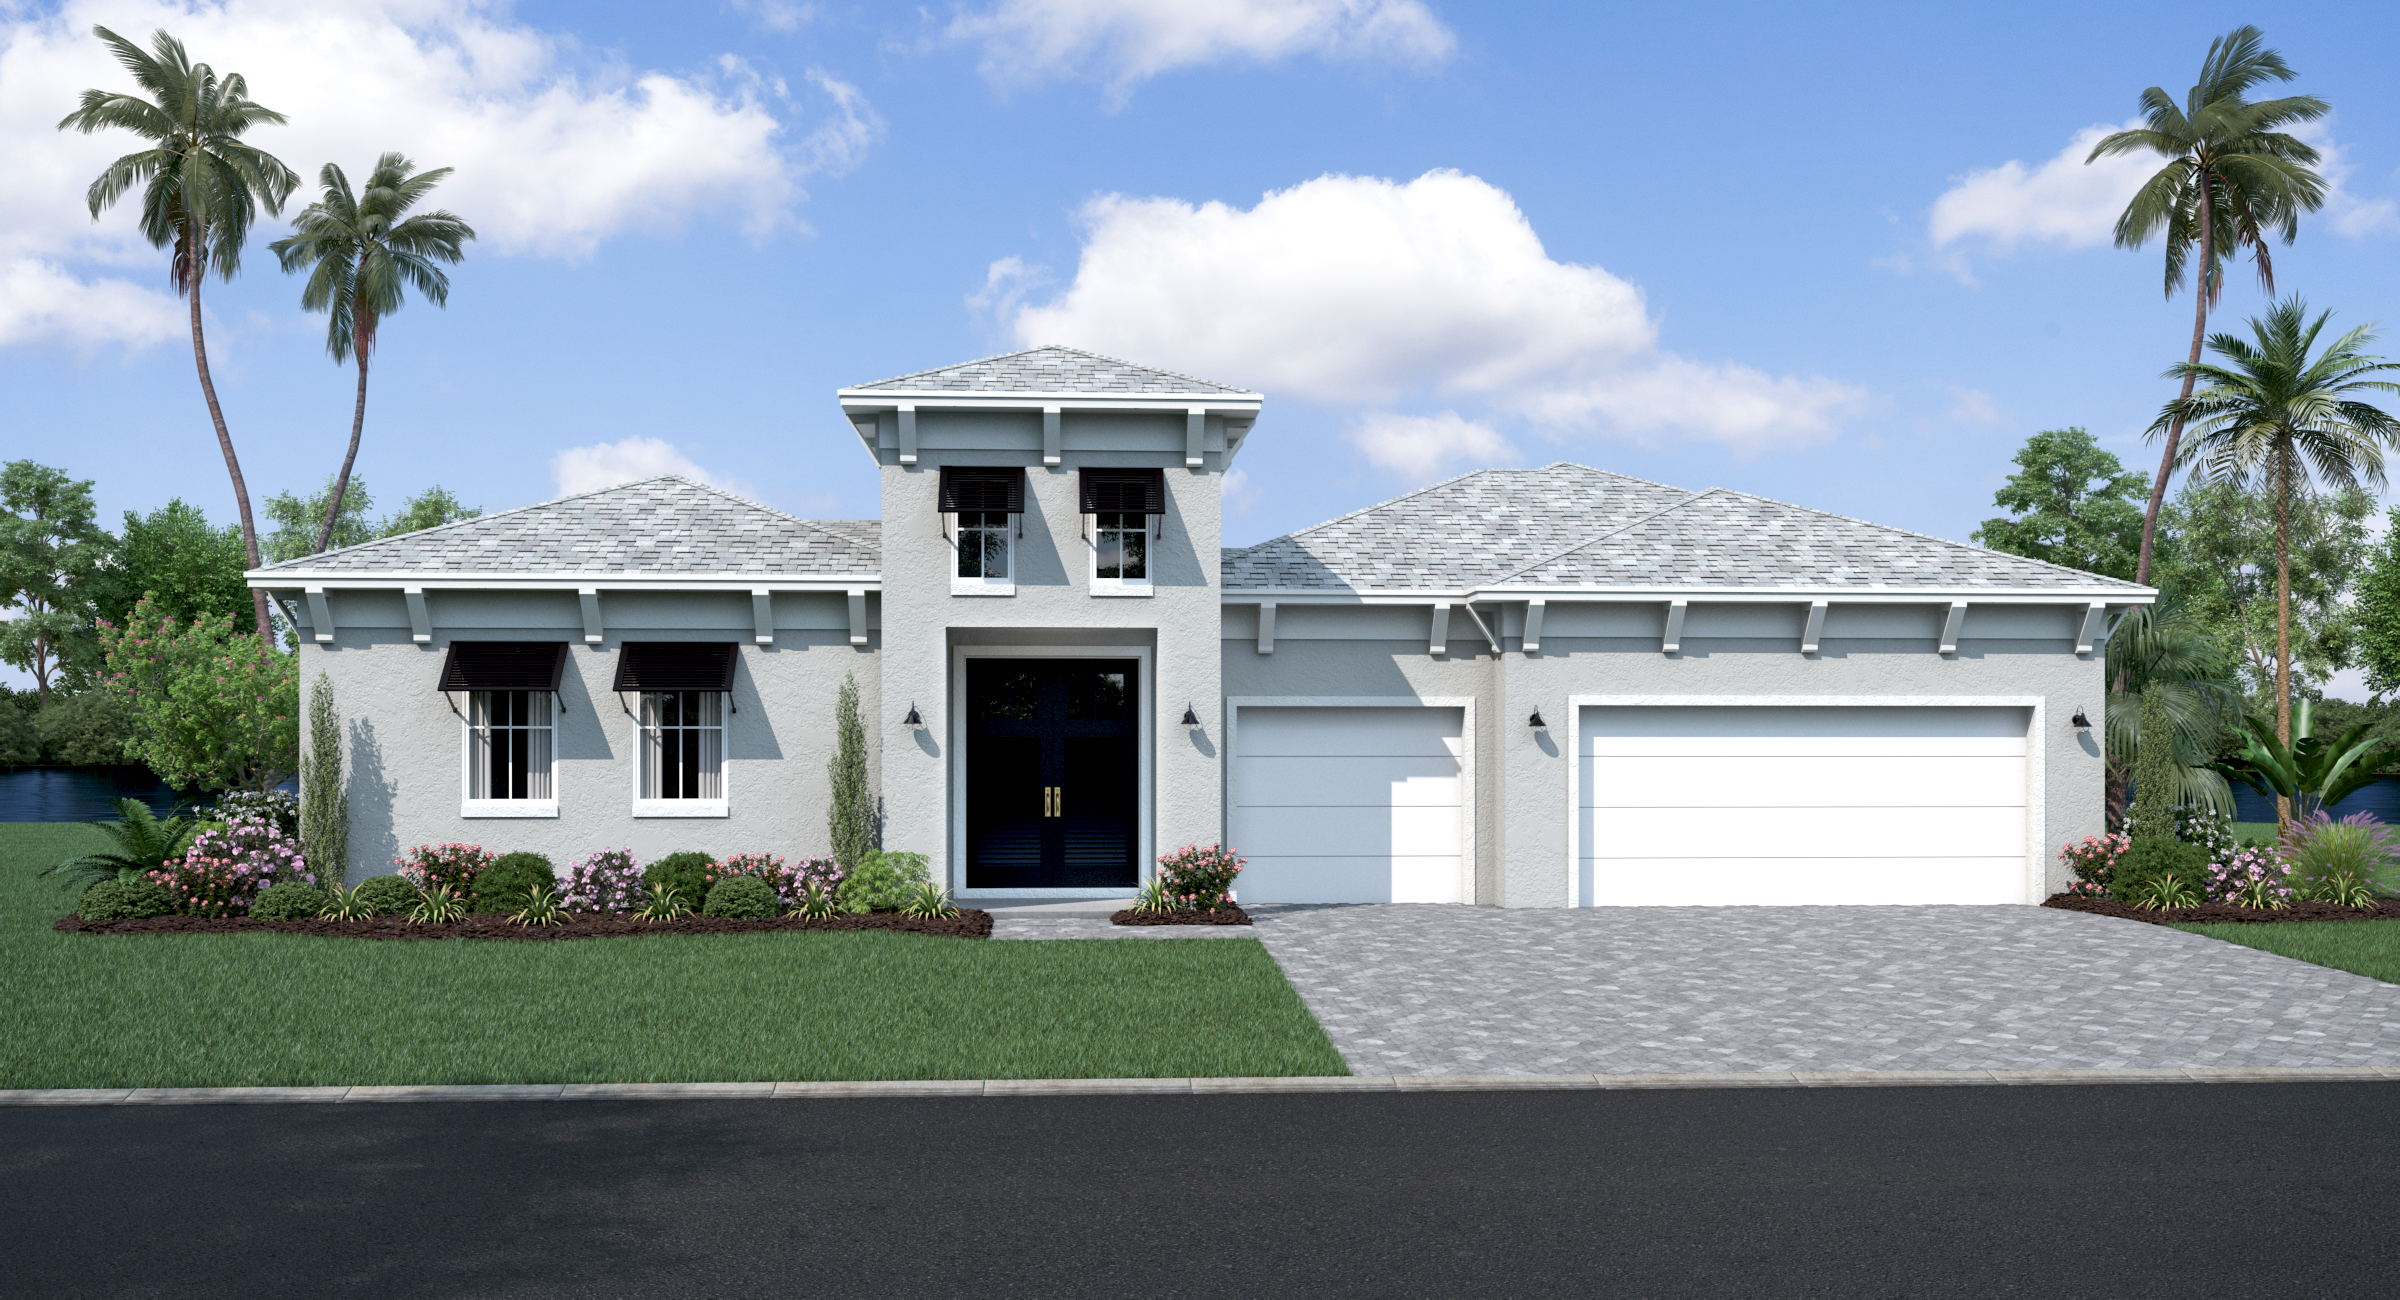 Courtyard home model rendering at Epperson in Wesley Chapel